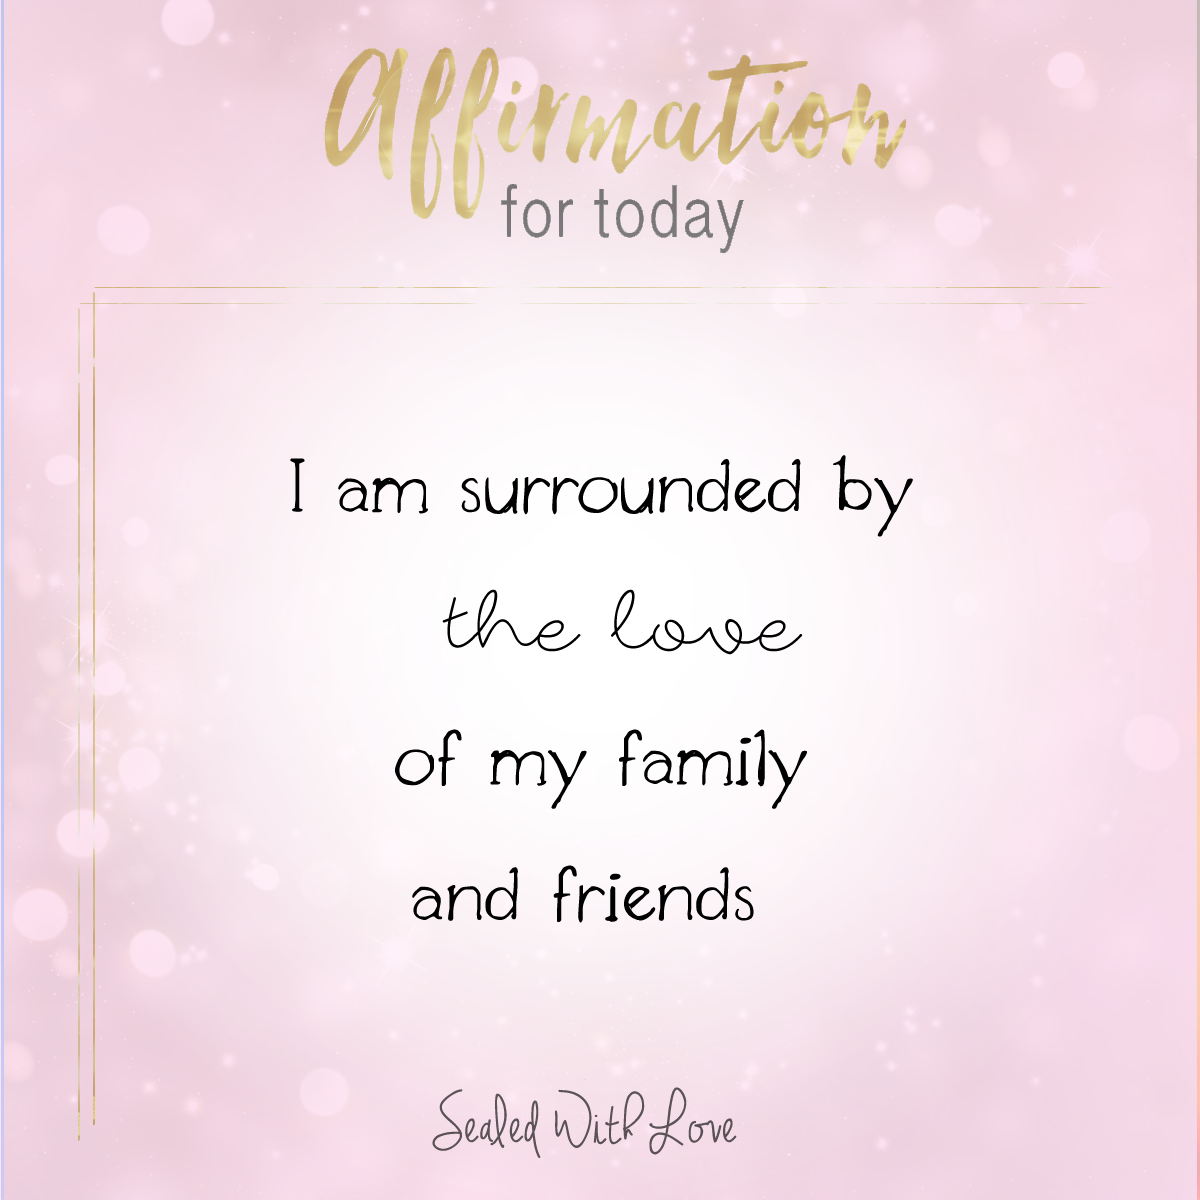 I Am Surrounded By The Love Of My Family And Friends Positive Affirmations Quotes Positive Self Affirmations Affirmation Quotes